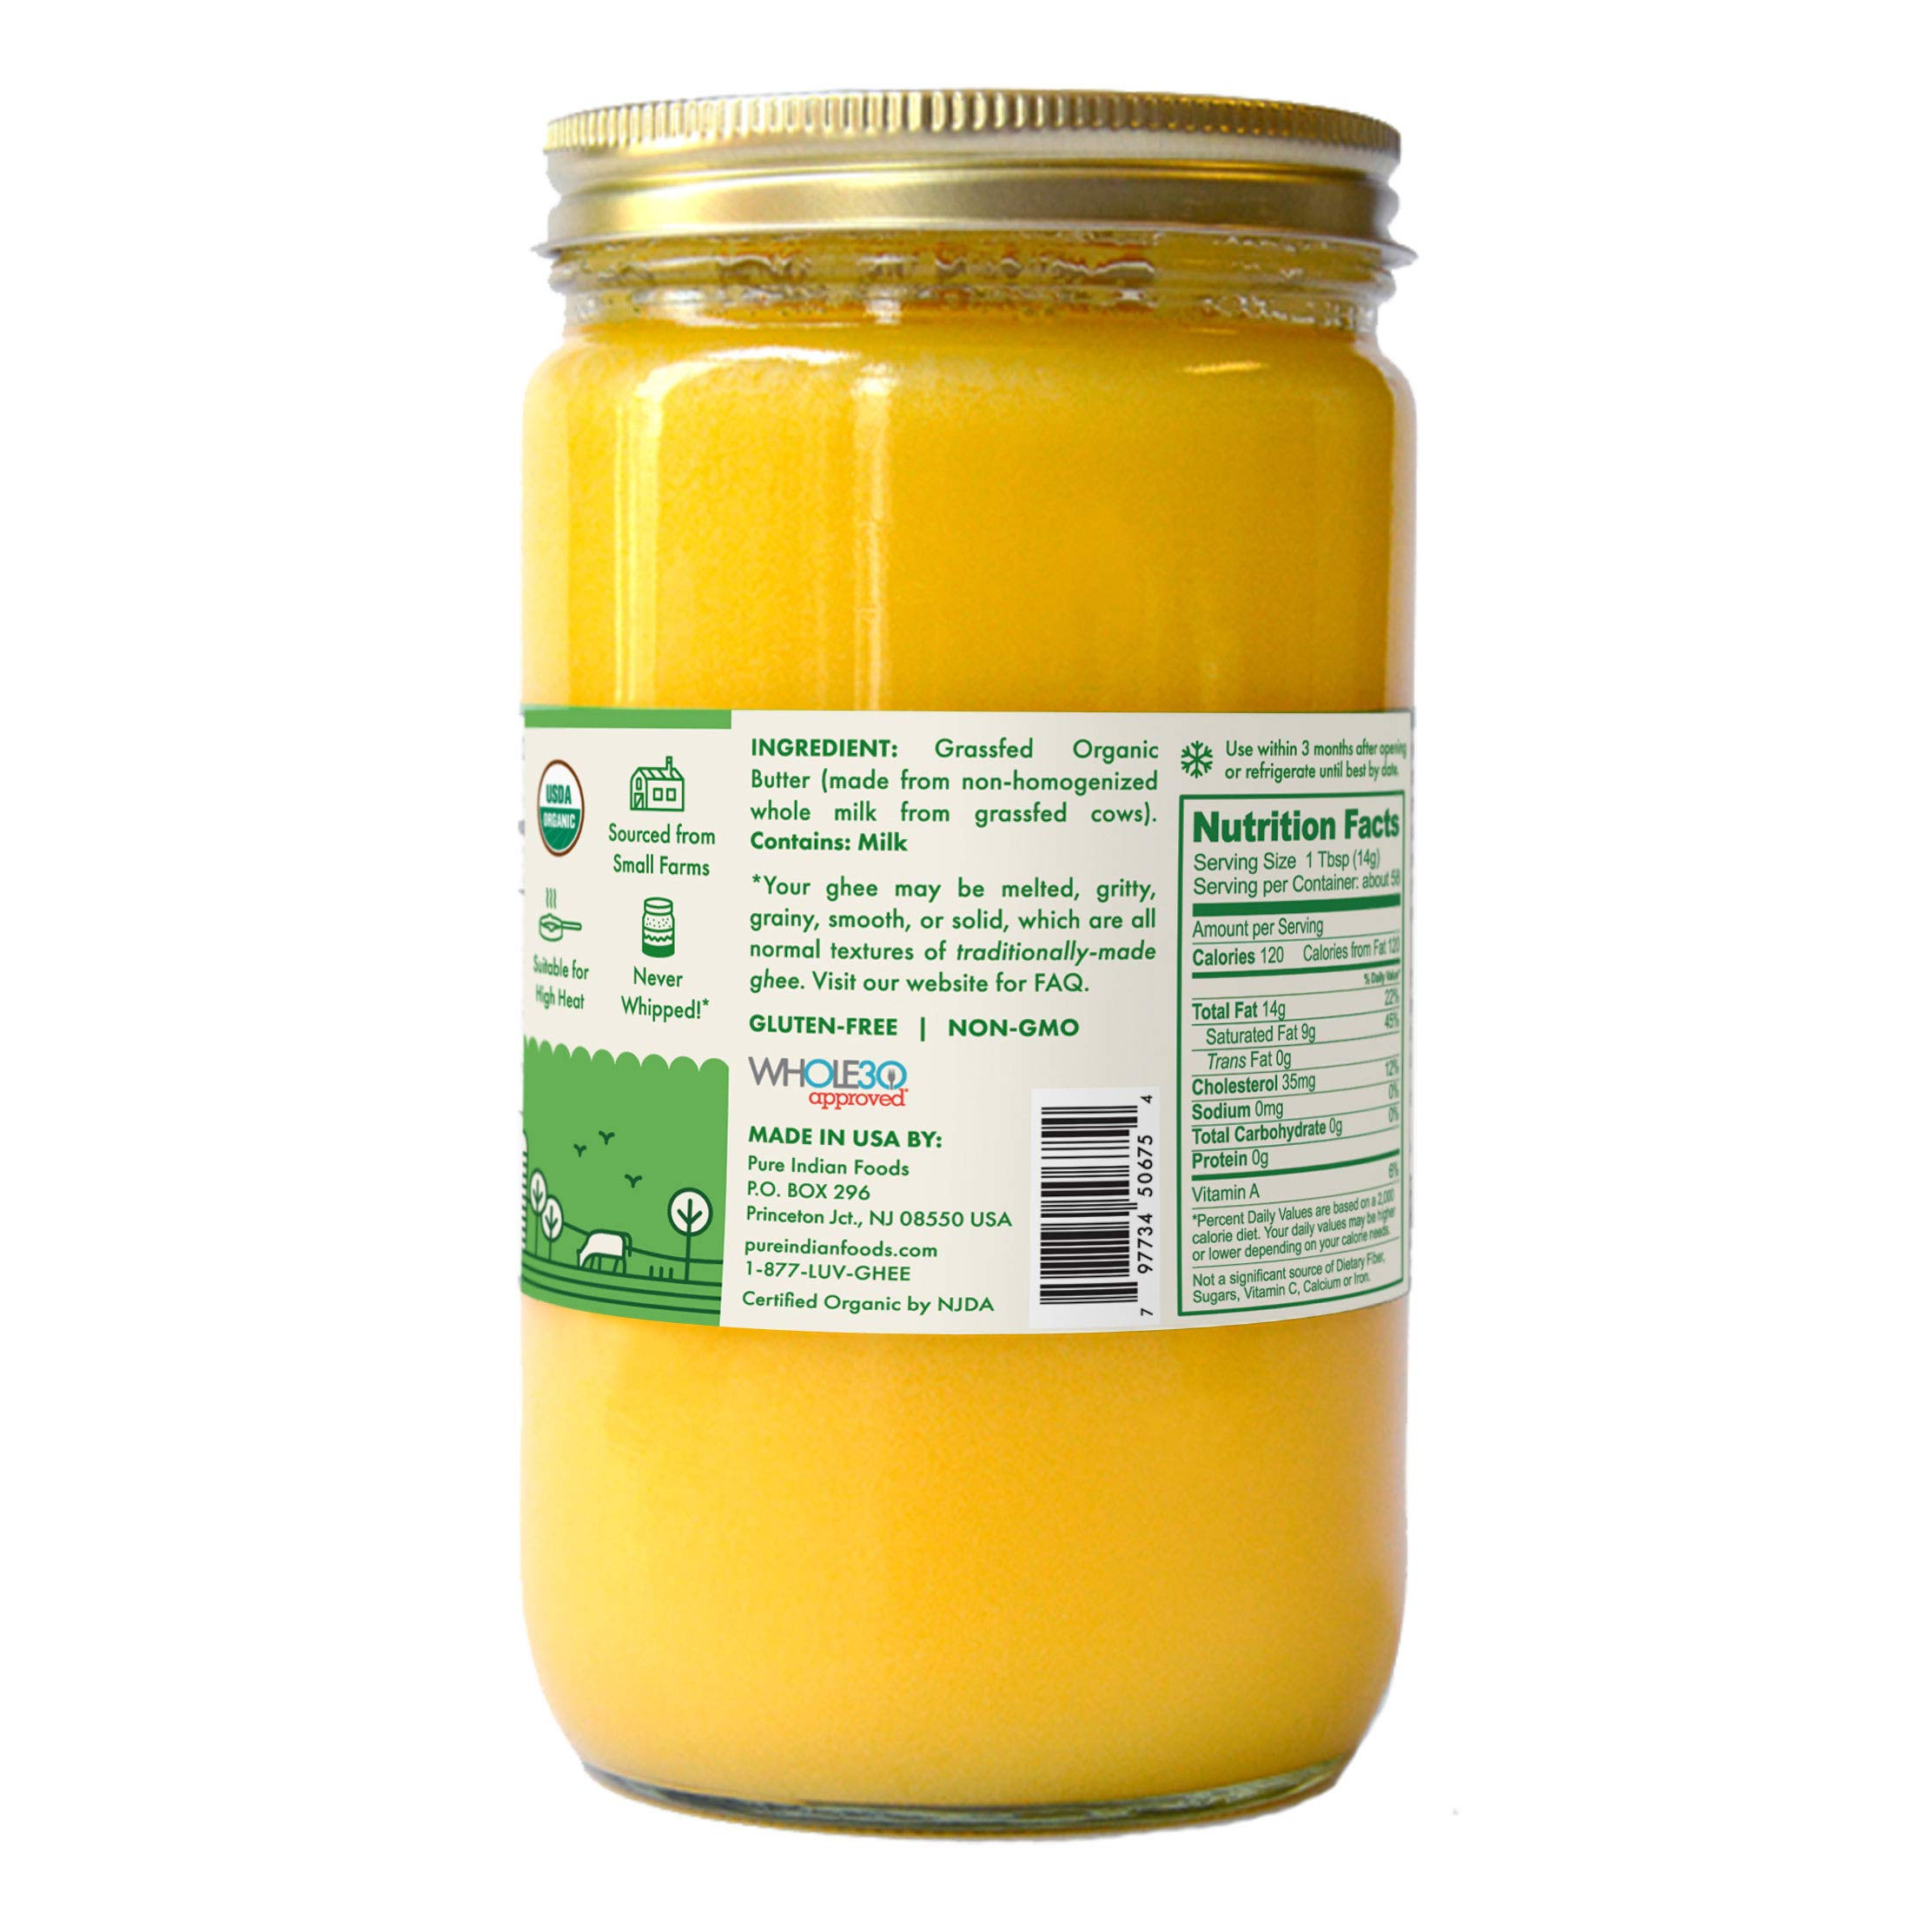 Grassfed 100% Organic Ghee 28.8 oz (One Quart or 32 fl oz) by Pure Indian Foods (Image #3)